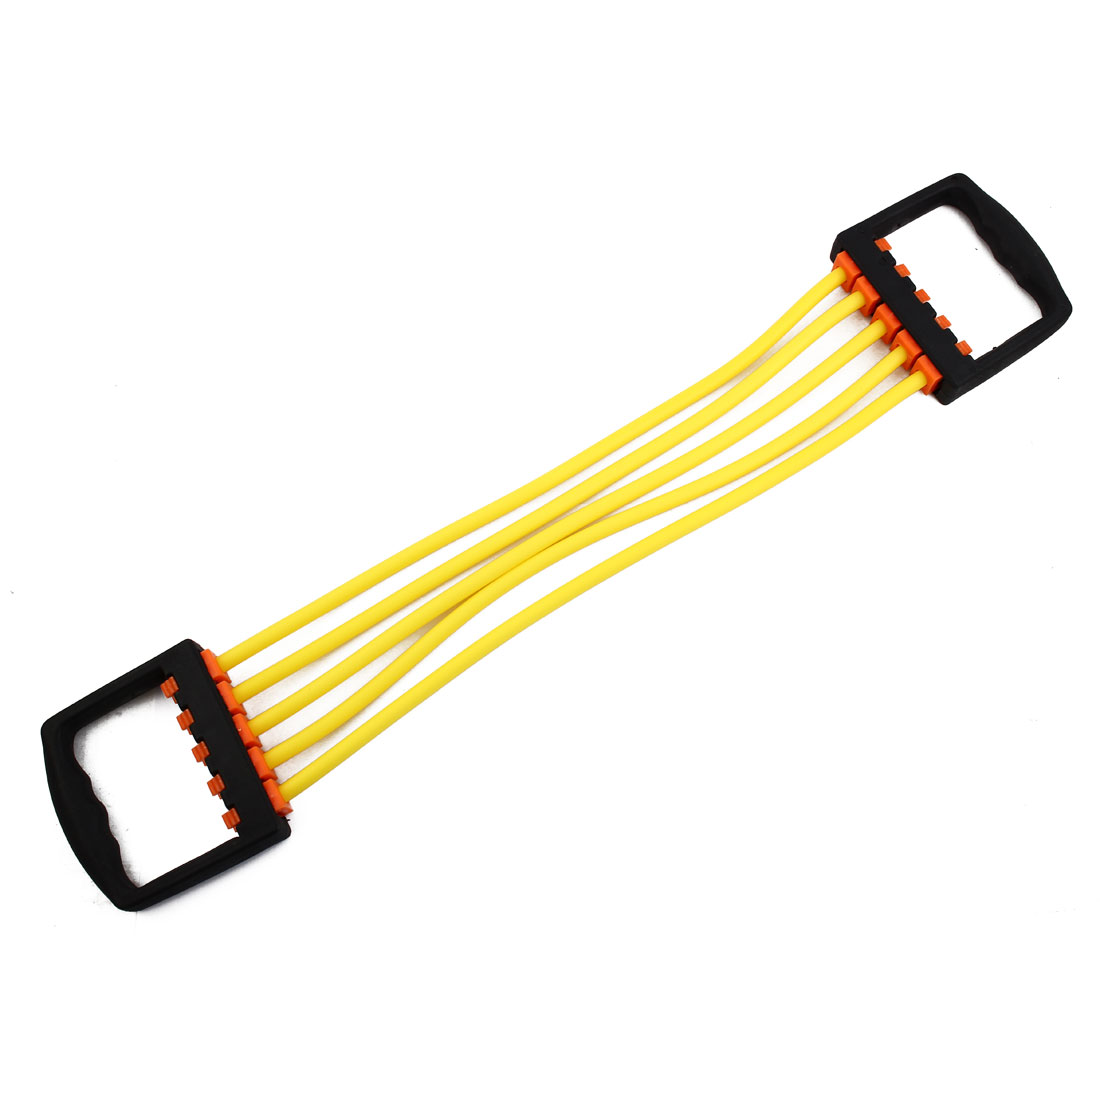 Sports Rubber Stretchy Powerlifting 5 Resistance Tube Strength Training Rope Workout Hose Yellow